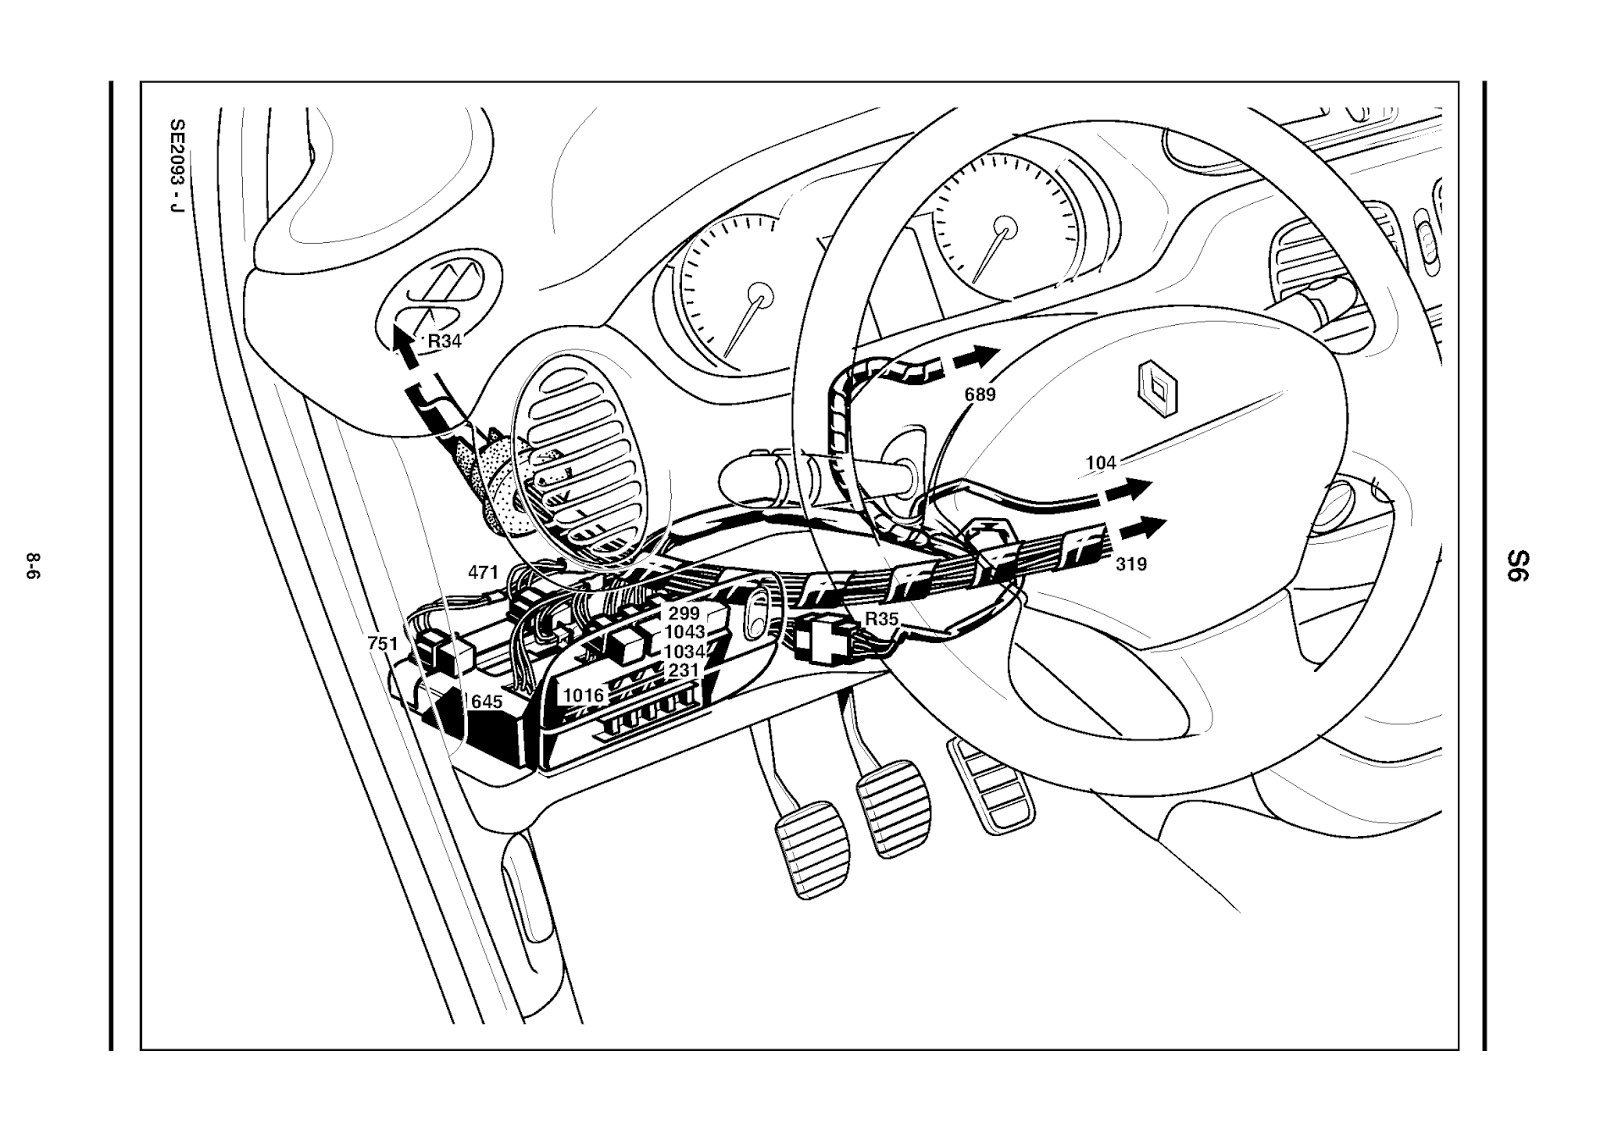 kia forte fan diagram  kia  free engine image for user manual download